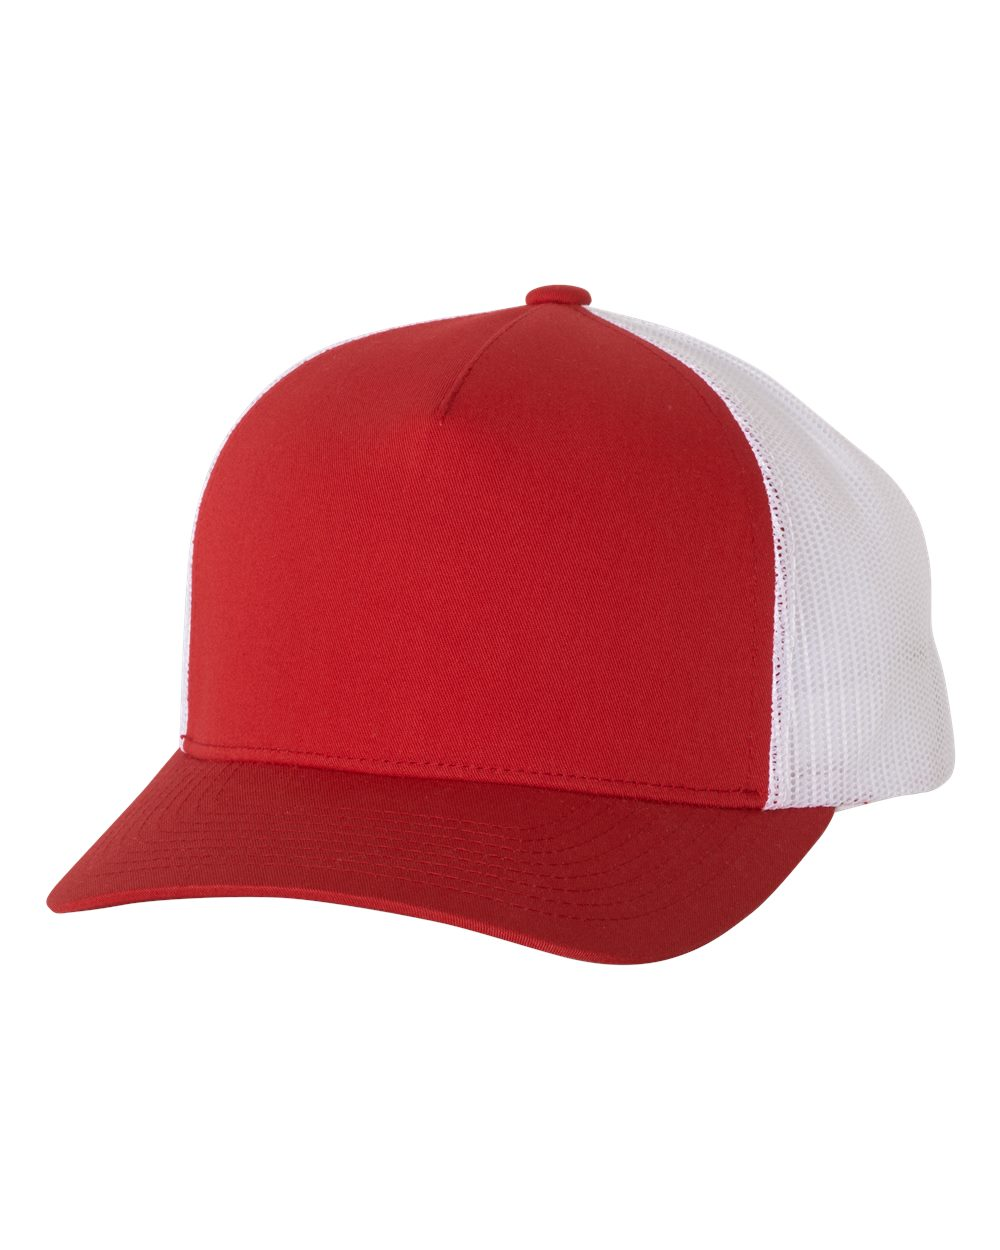 Hats - Five-Panel Retro Trucker Cap - 6506